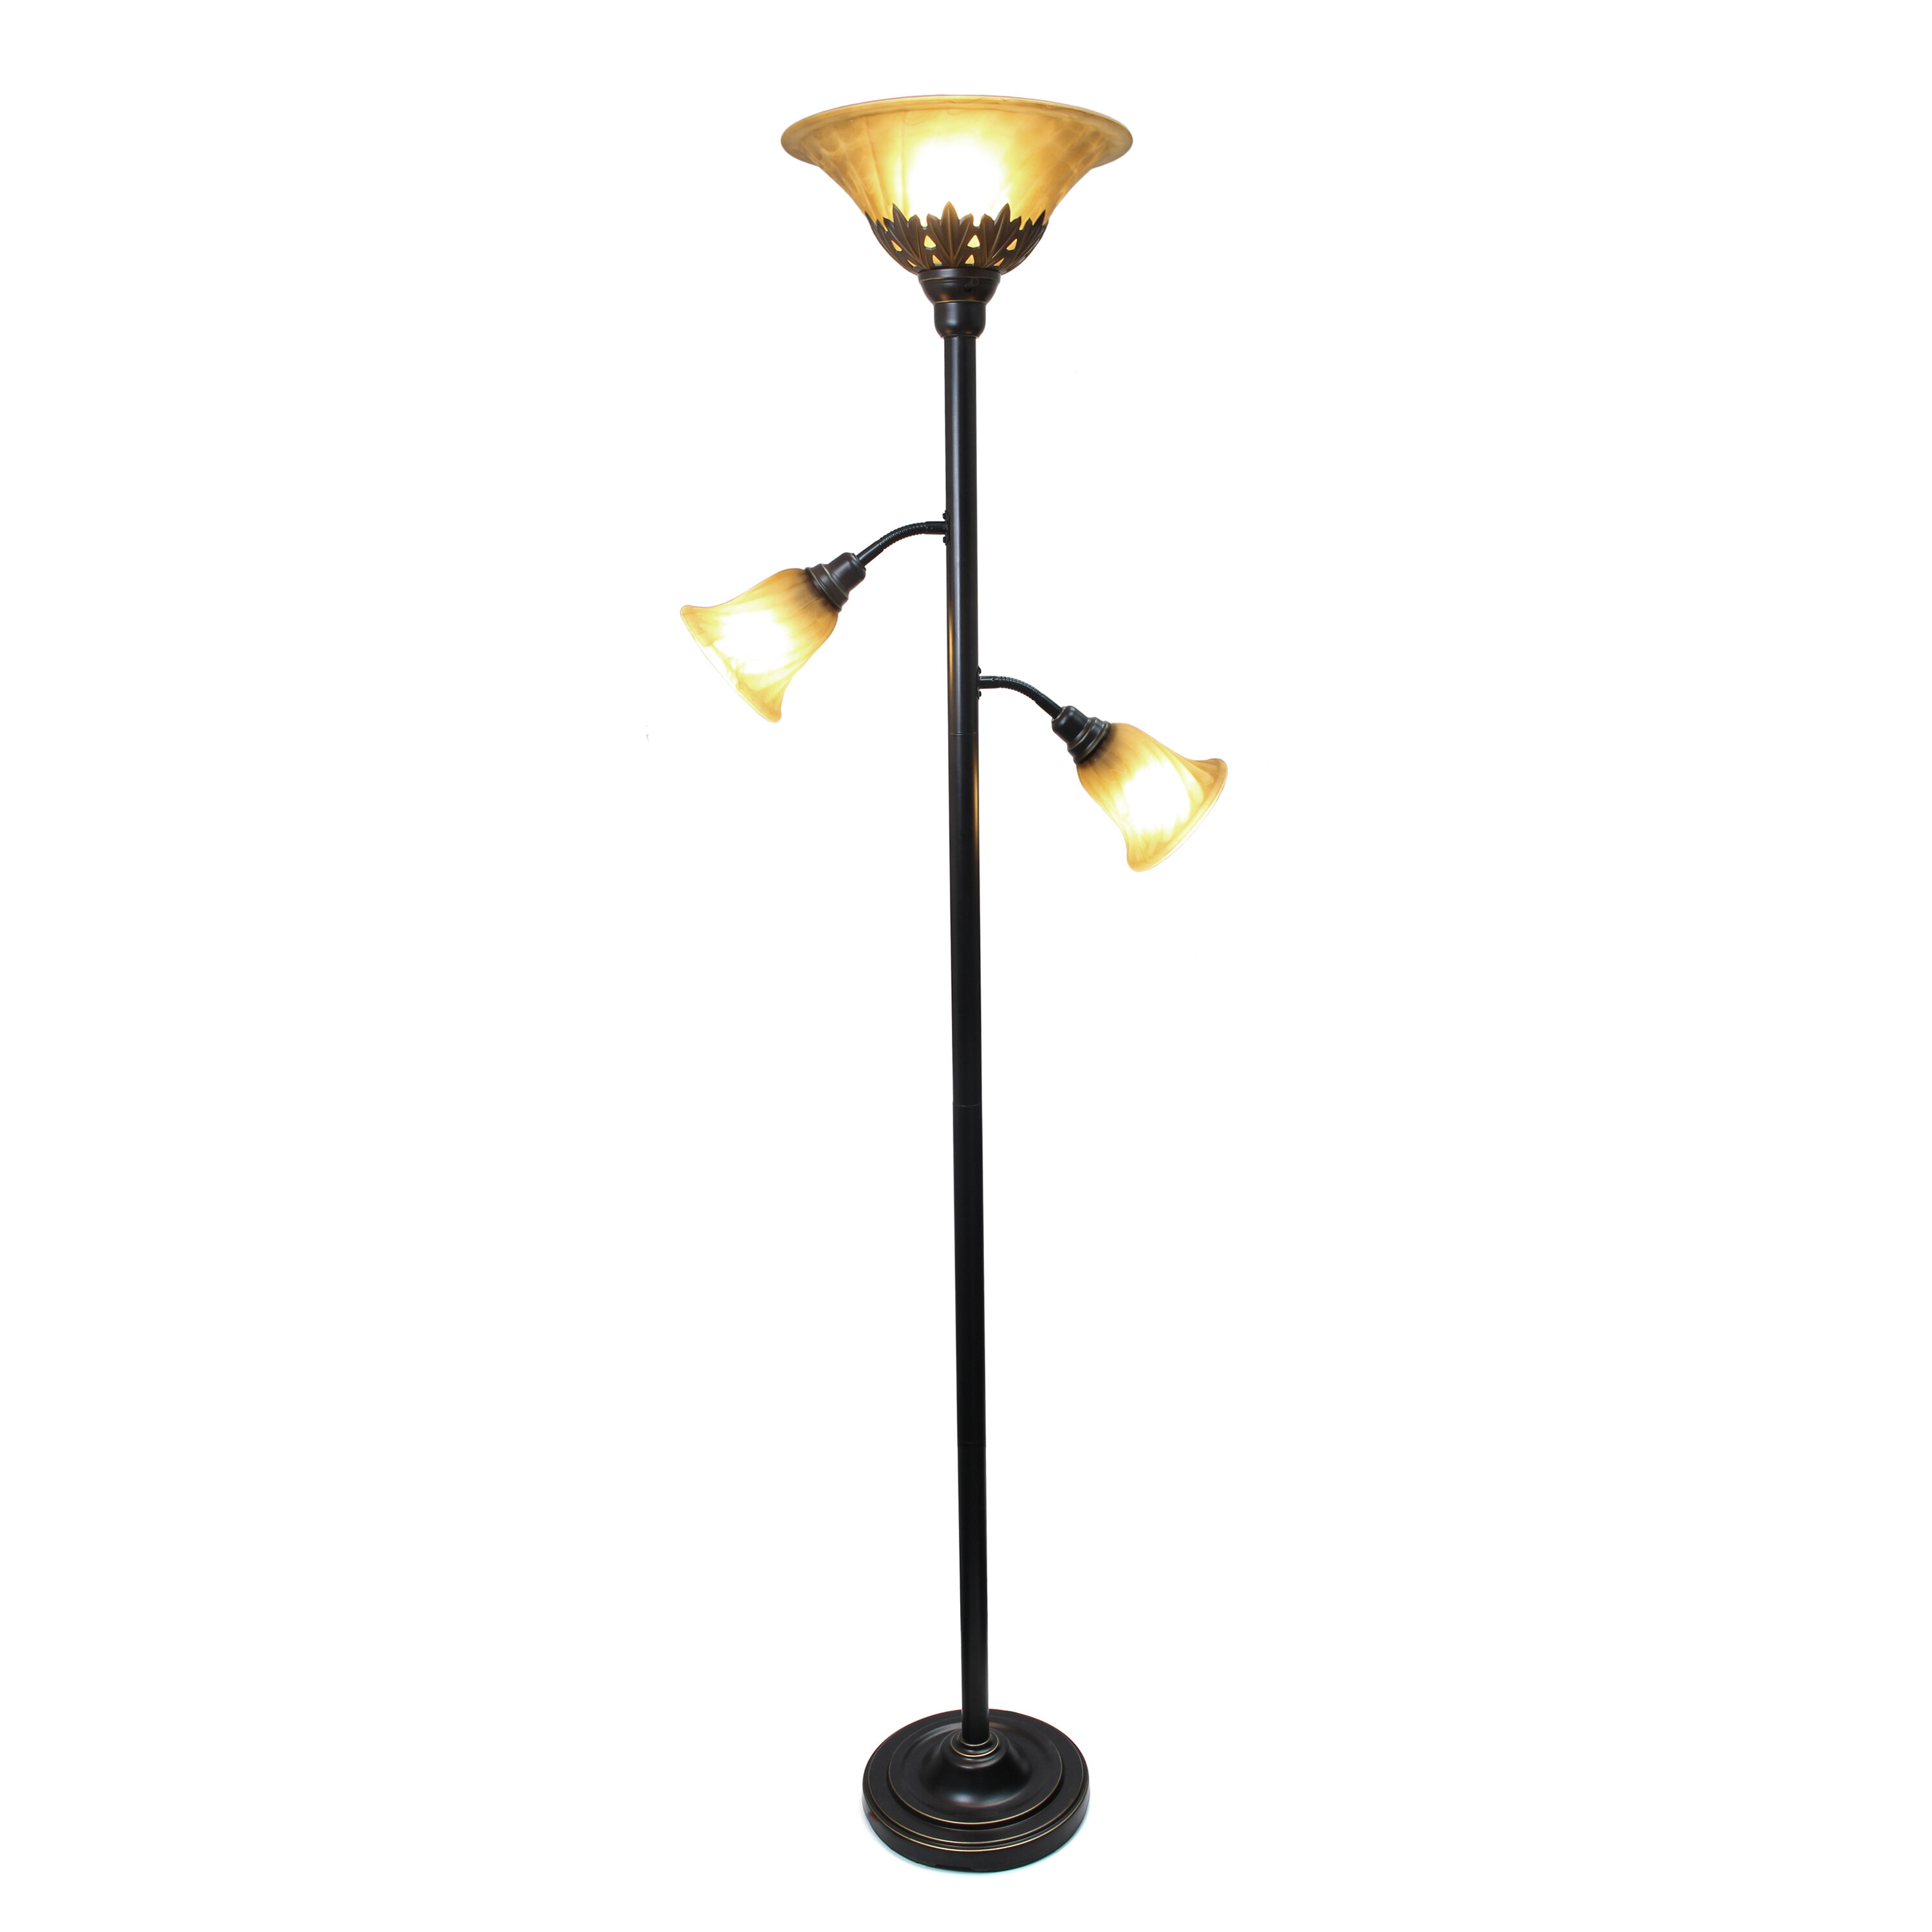 Extra Tall 70 Inches Floor Lamps You Ll Love In 2021 Wayfair